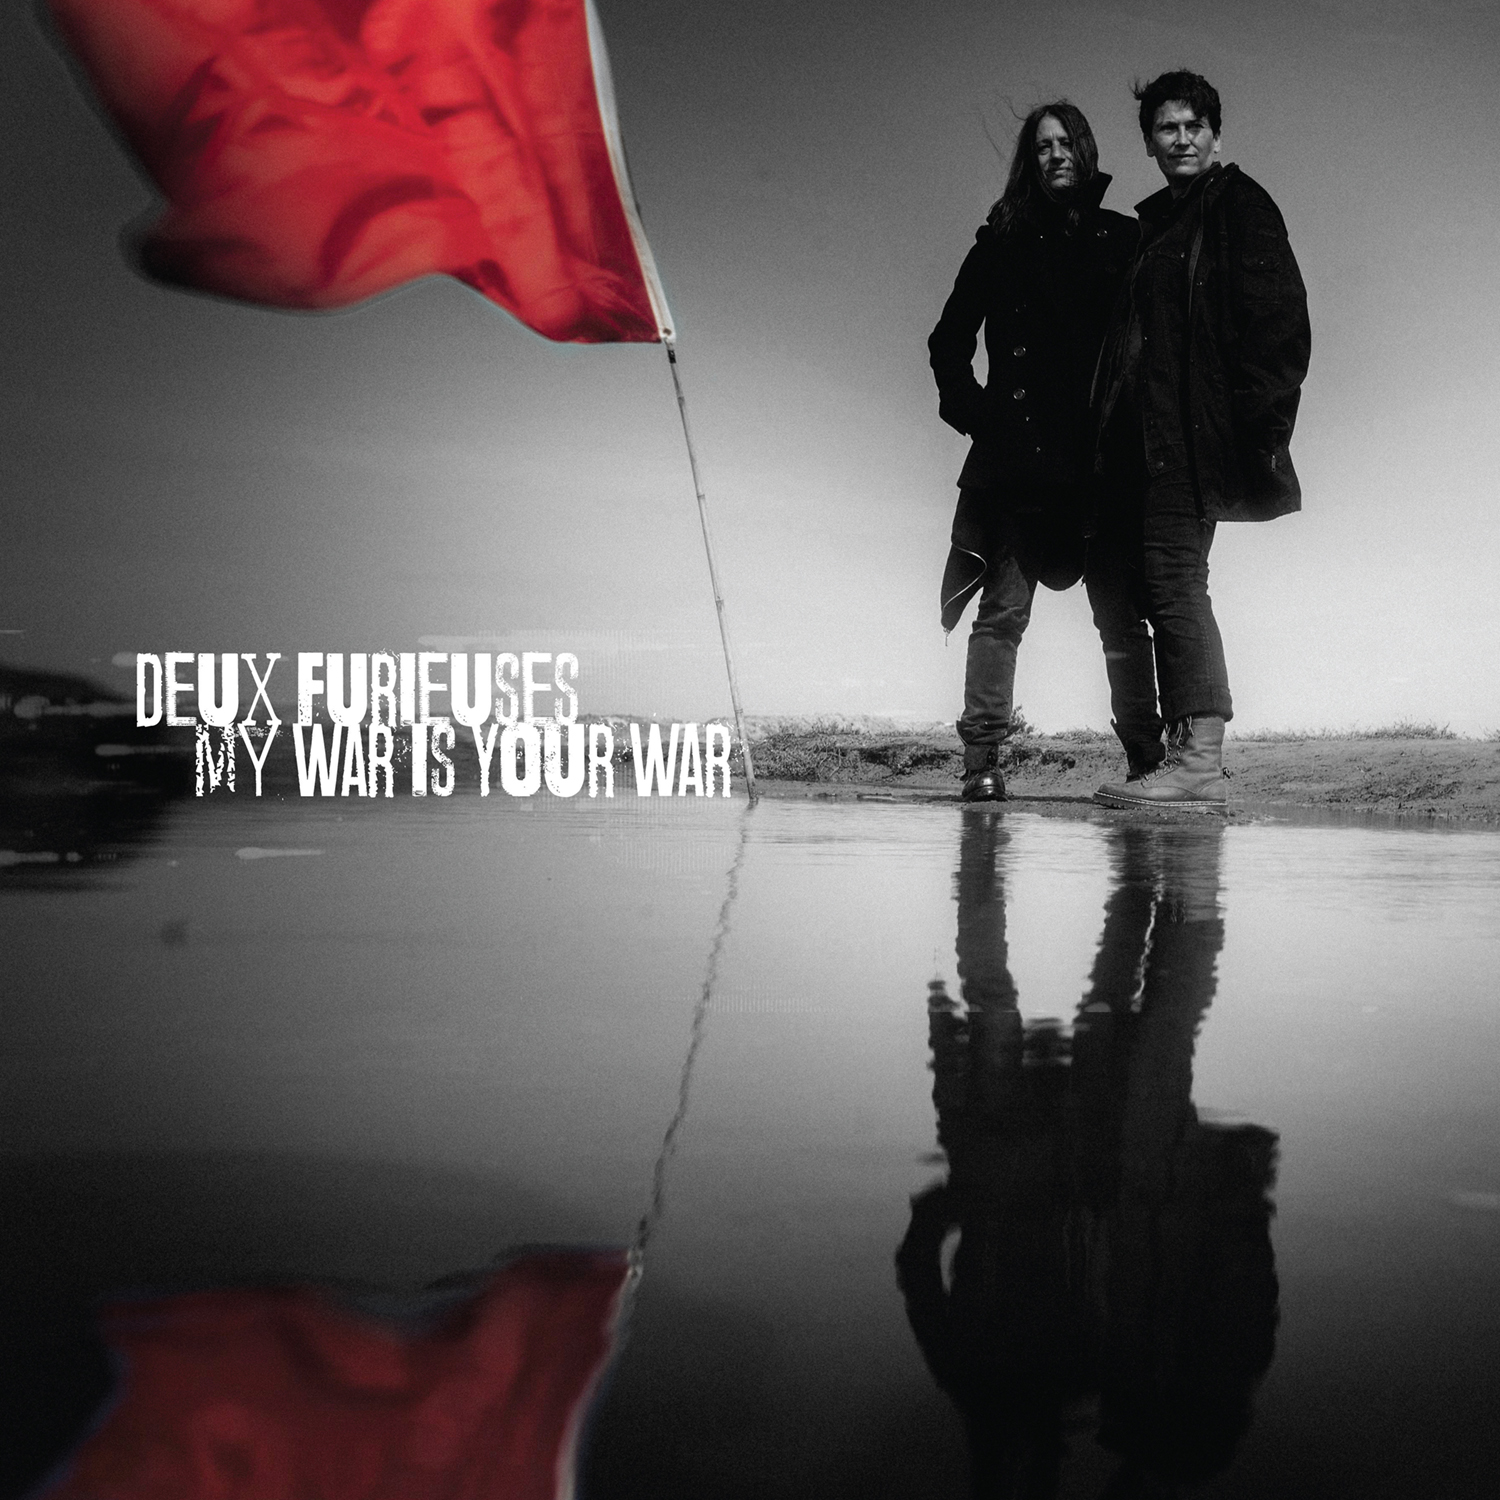 deux furieuses-My War Is Your War - pack shot.jpg